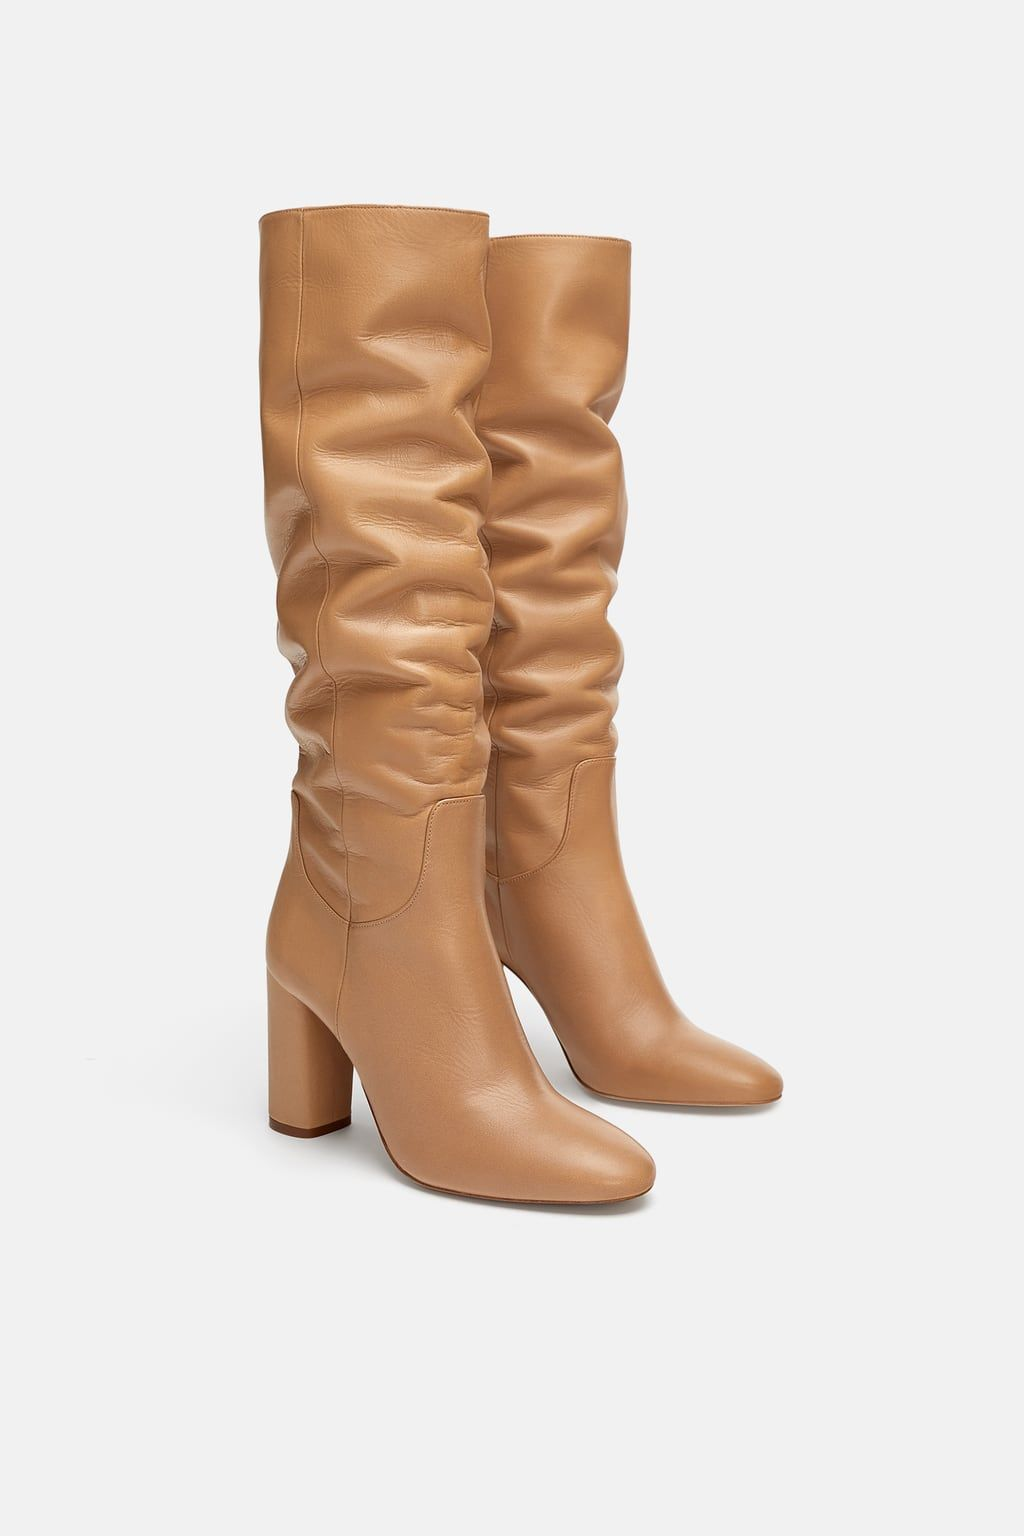 aa15e72d238 Image 3 of HIGH HEELED LEATHER BOOTS from Zara